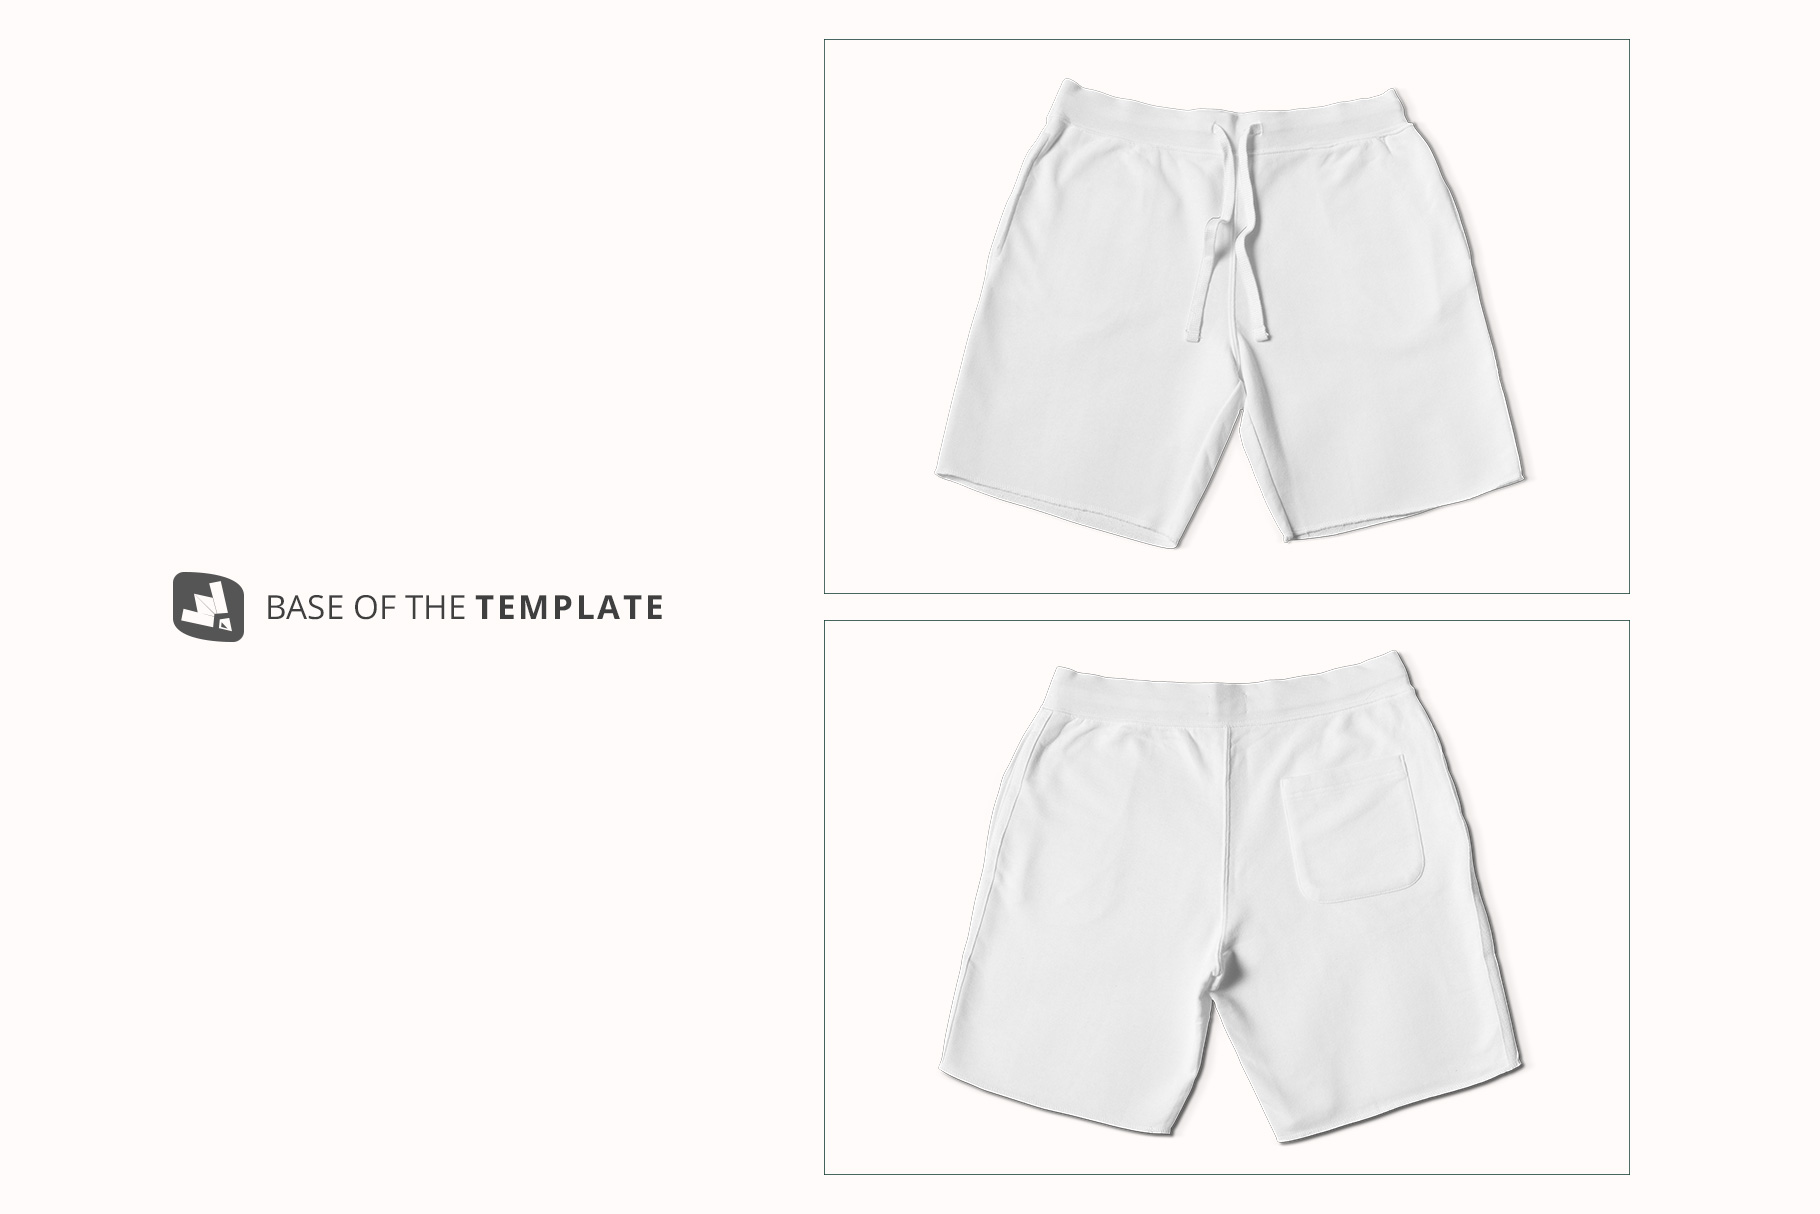 base image of the top view cotton shorts mockup